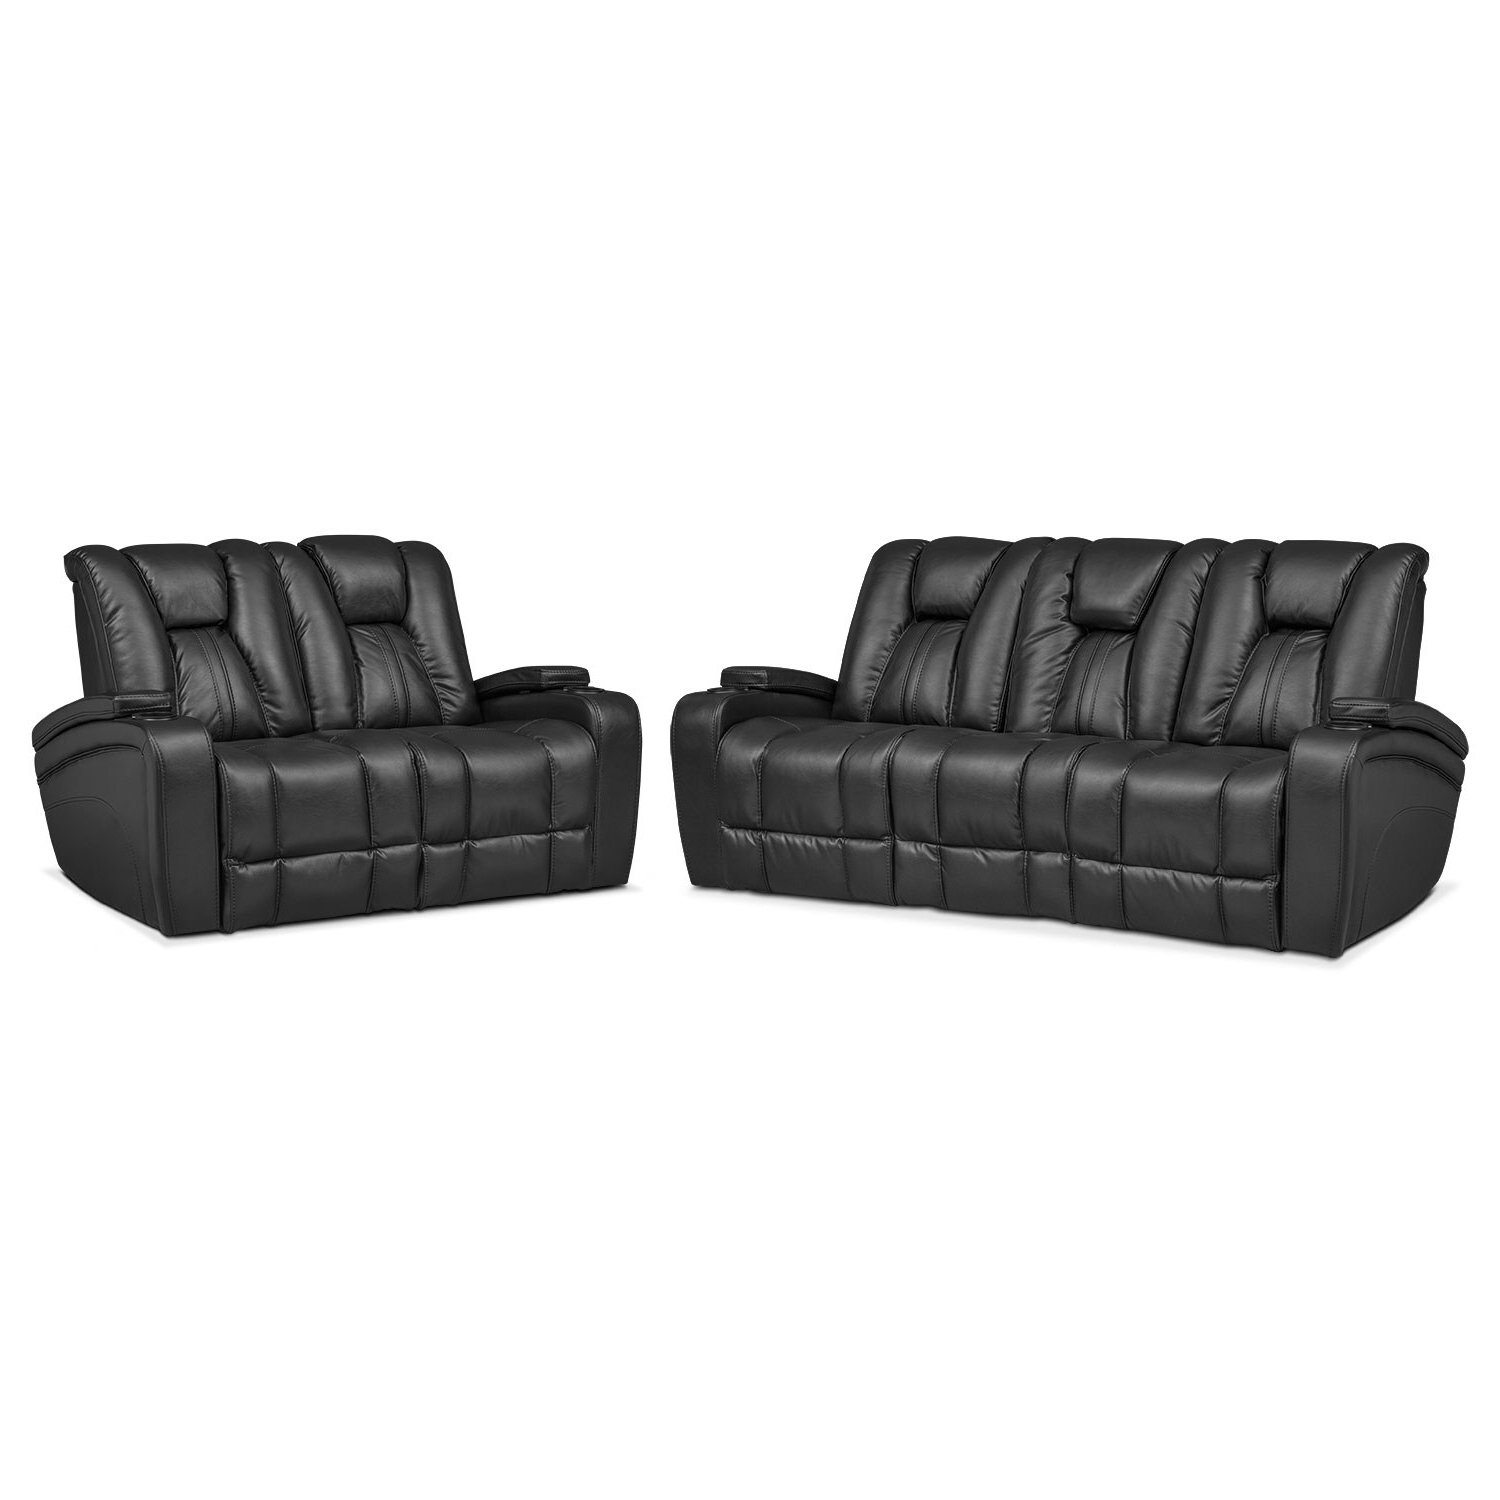 Dual Power Reclining Sofas In Most Recently Released Pulsar Dual Power Reclining Sofa And Dual Power Reclining (View 17 of 20)